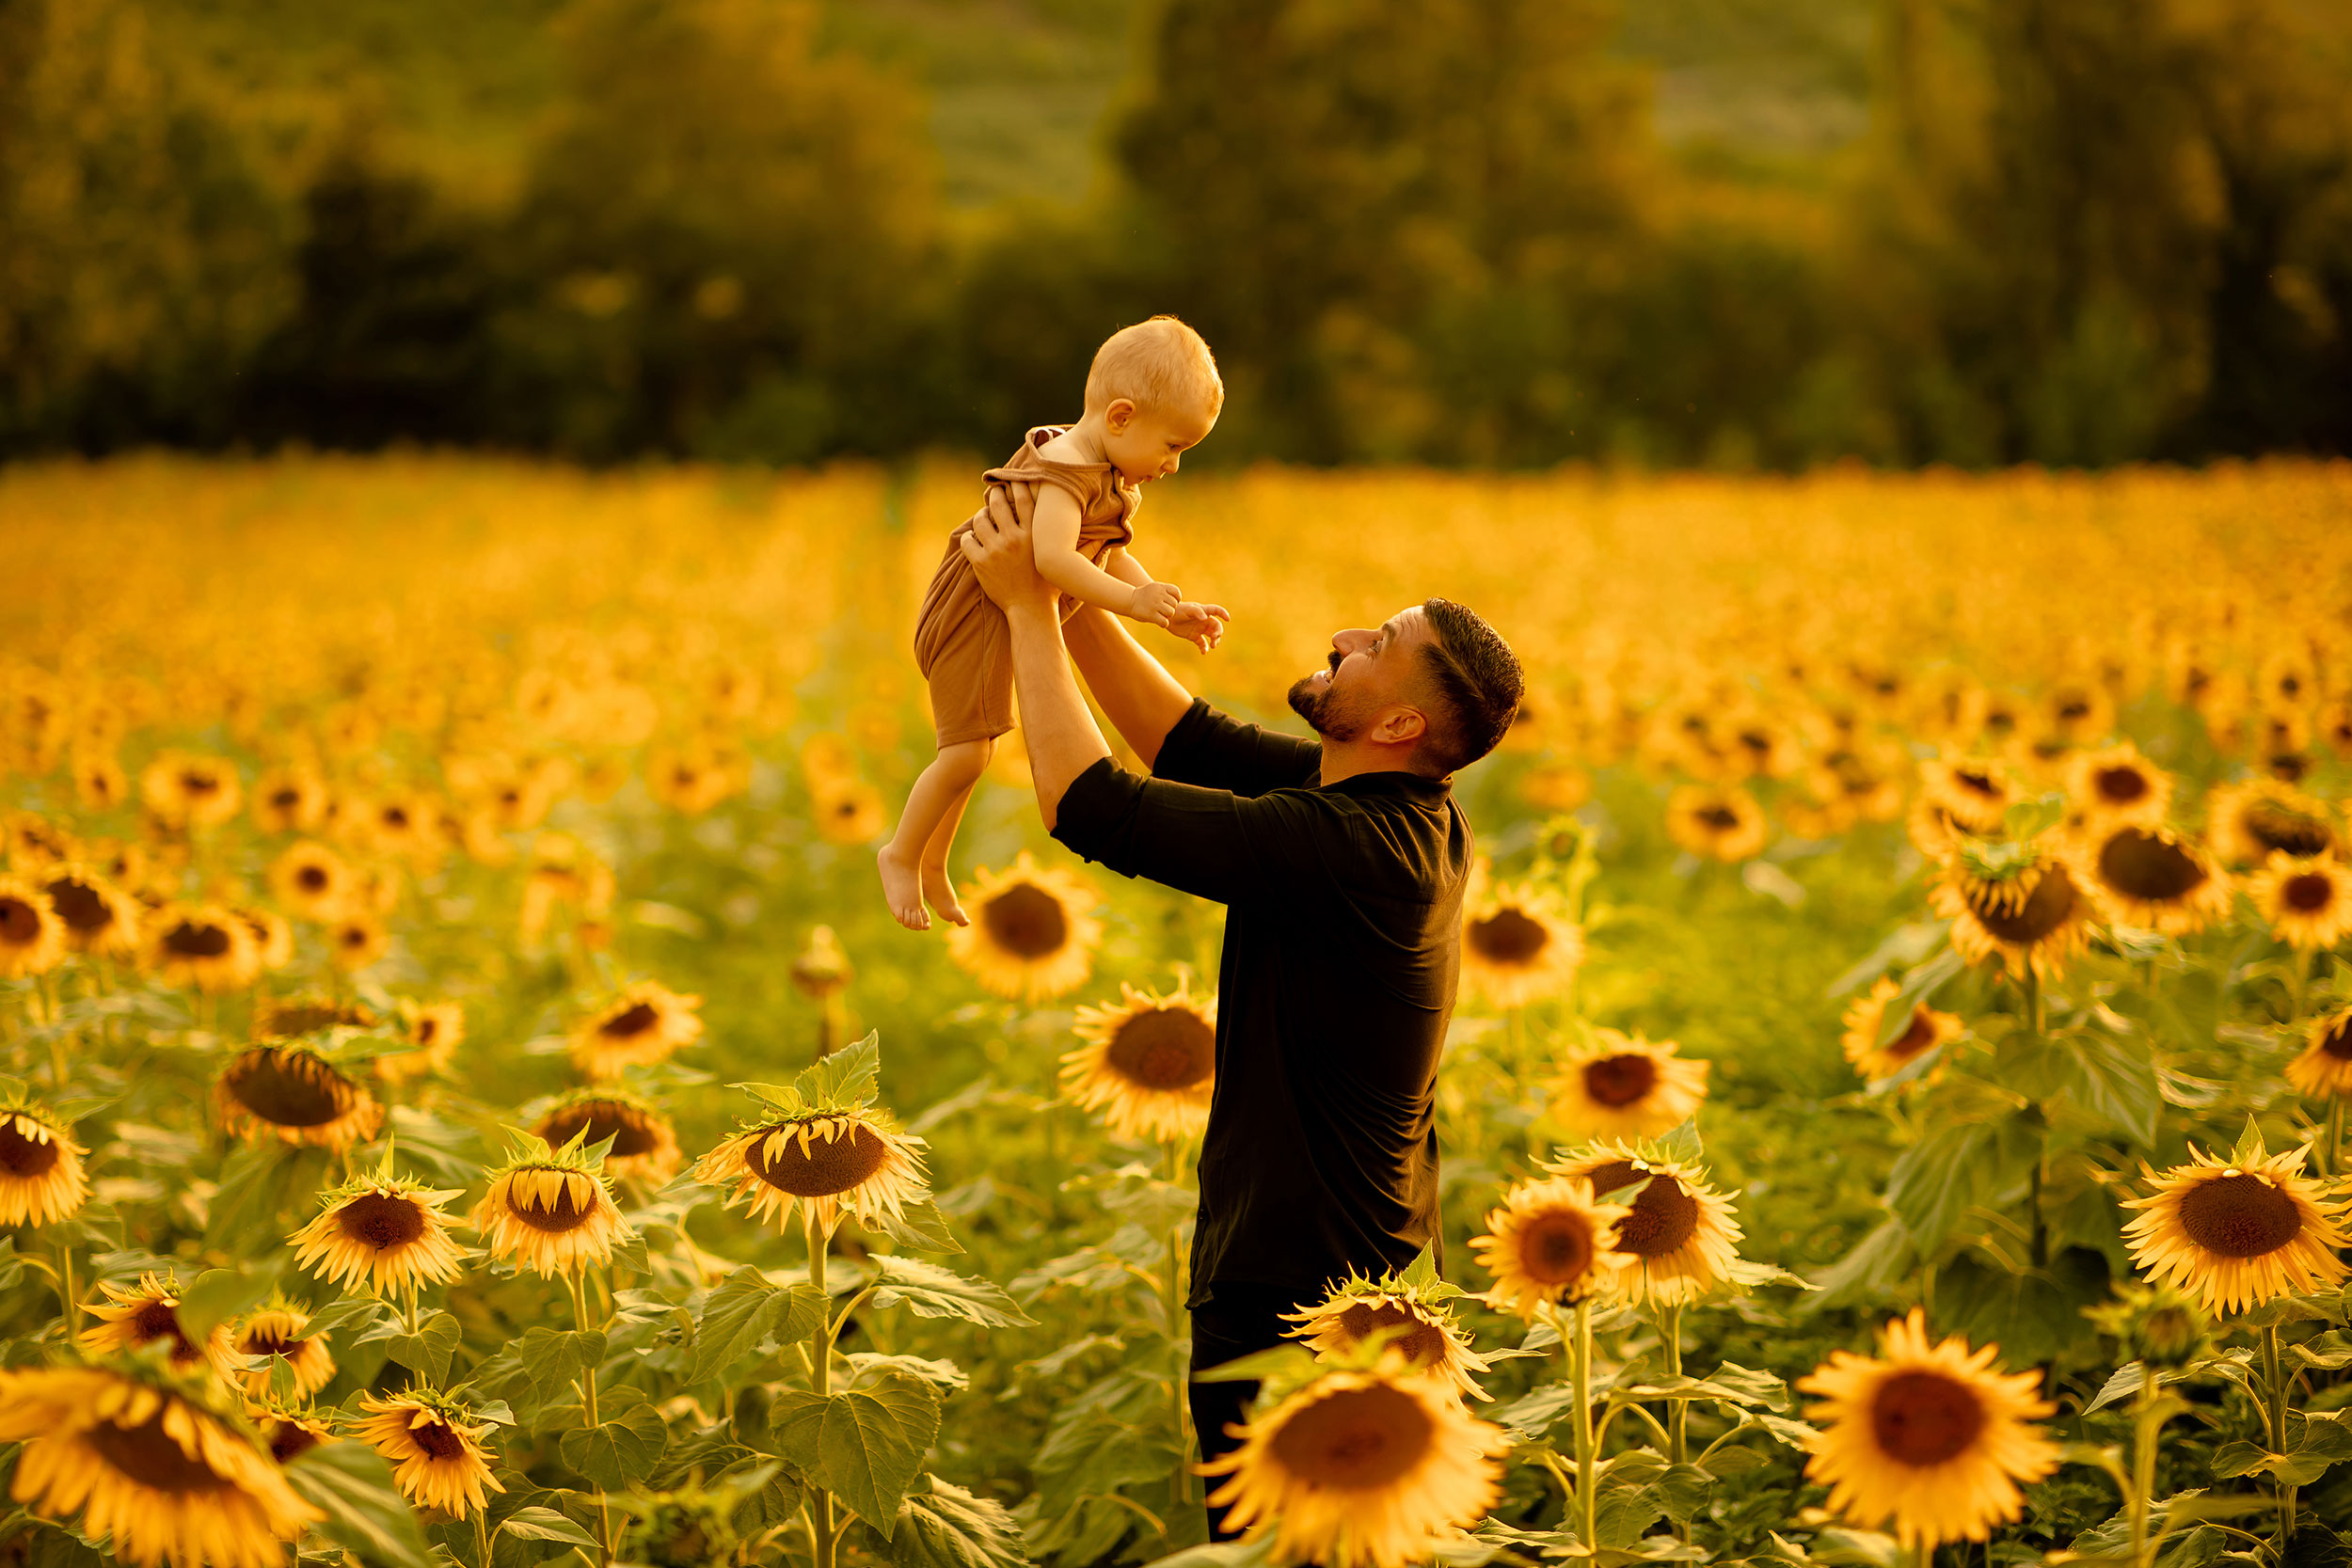 Father and son nature photoshoot